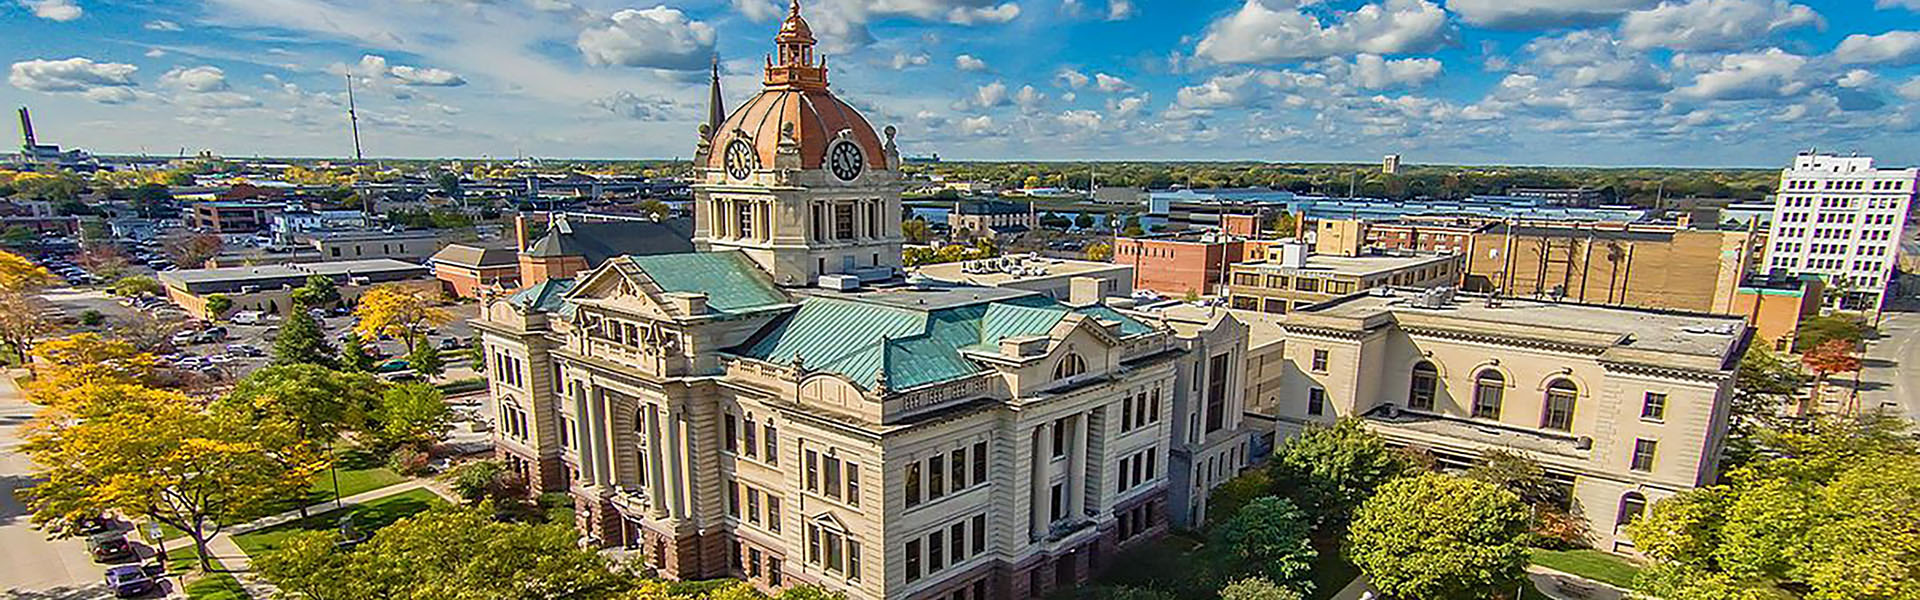 Brown County Courthouse Aerial